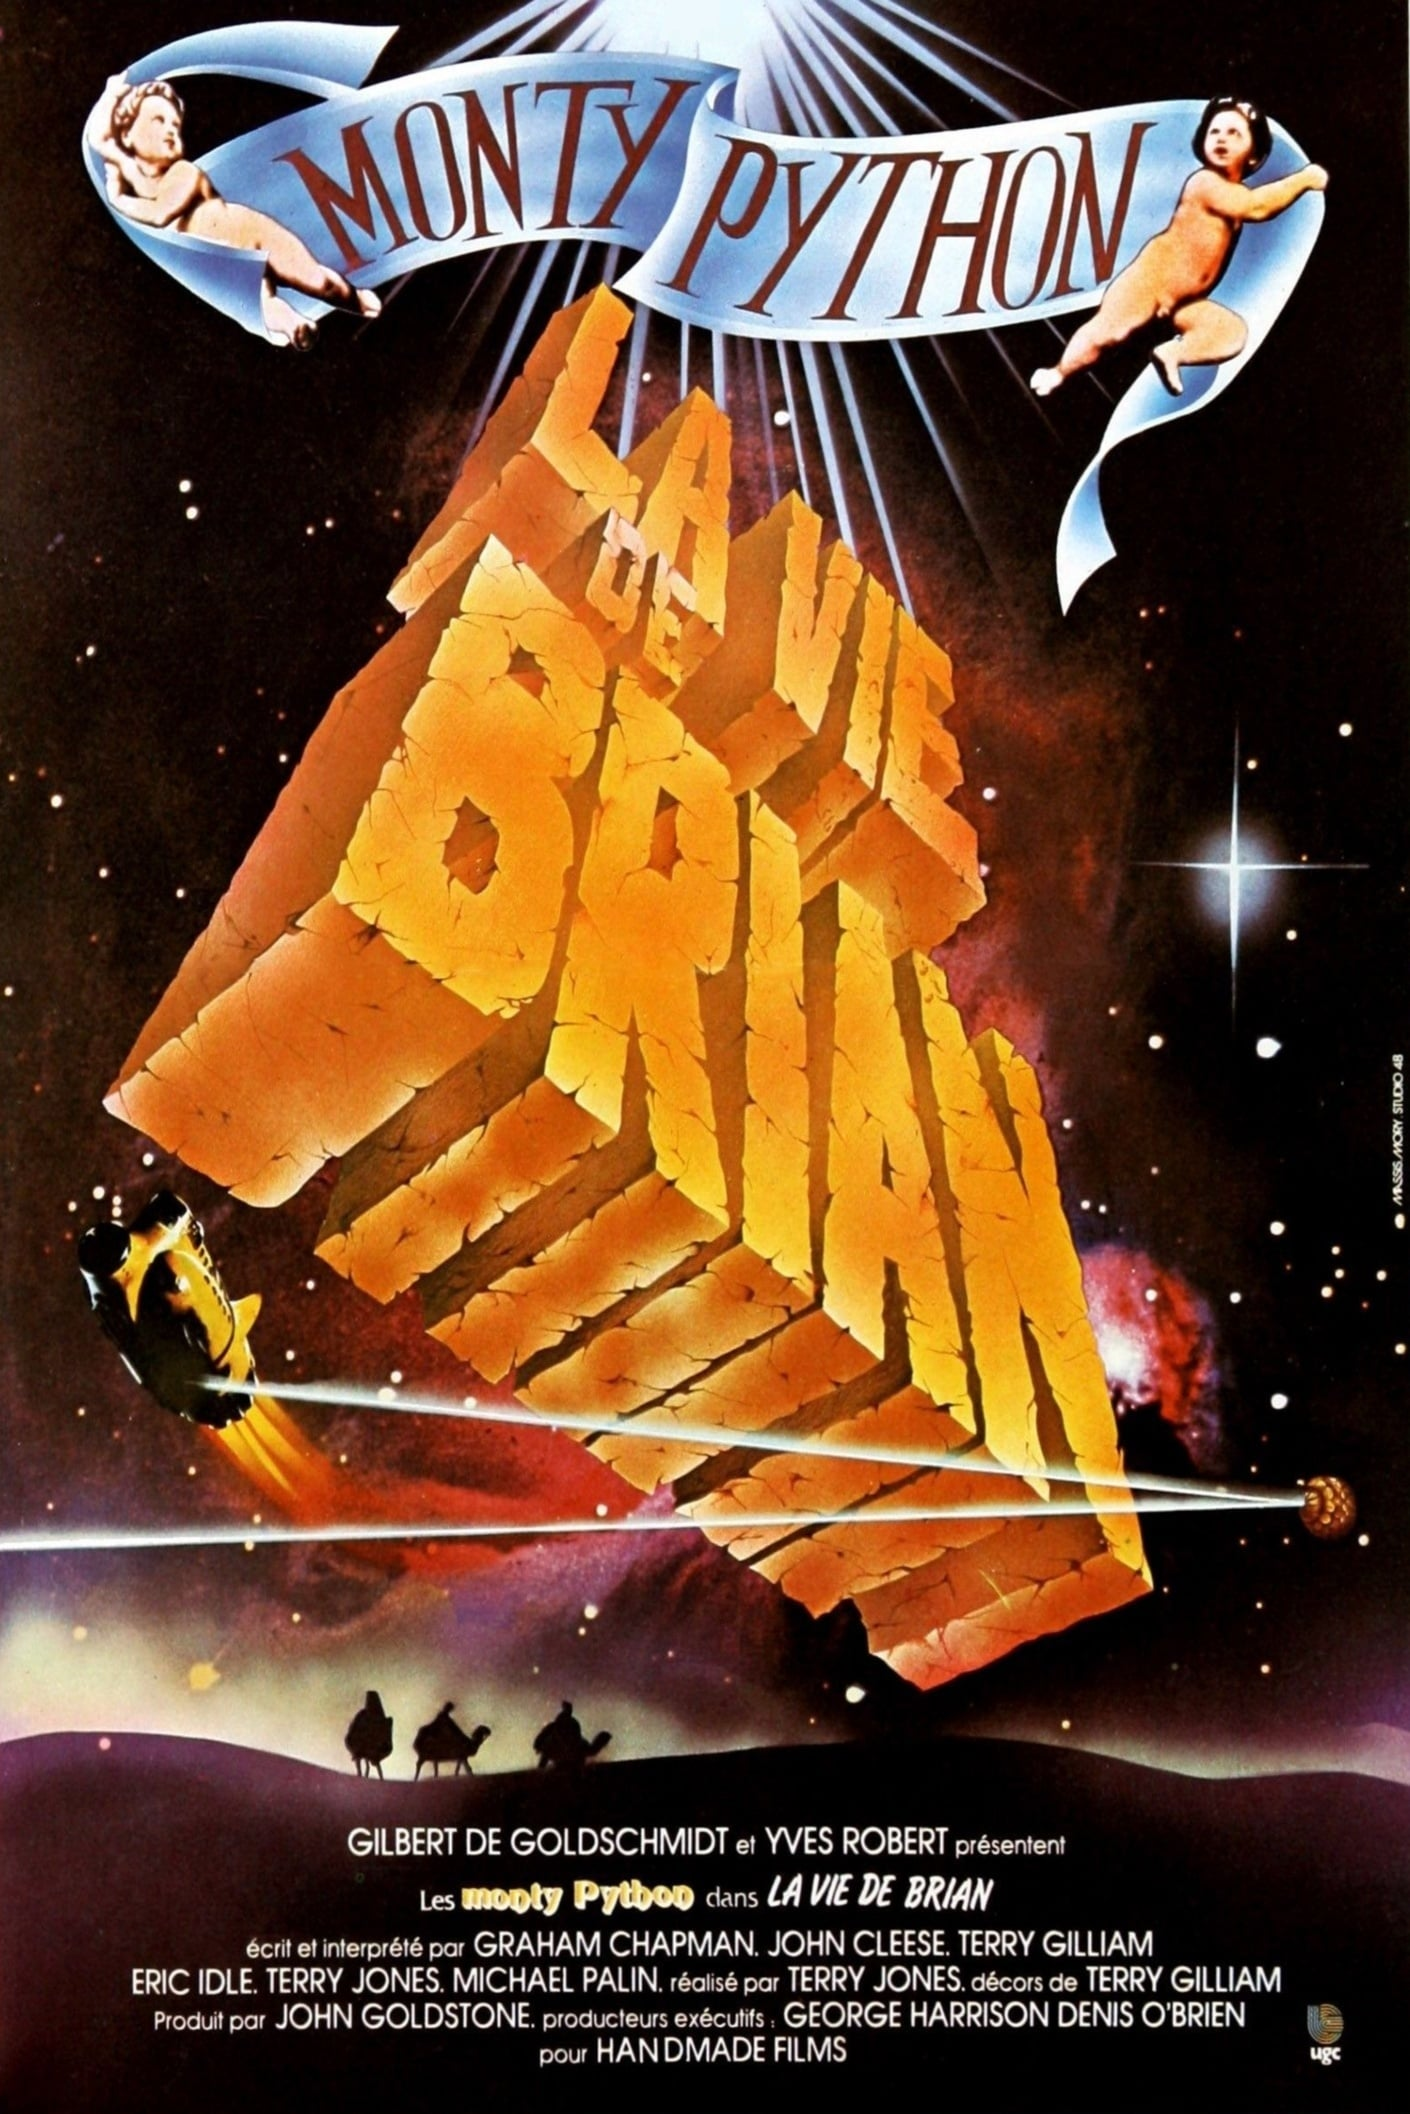 Monty Python - La vie de Brian streaming sur zone telechargement